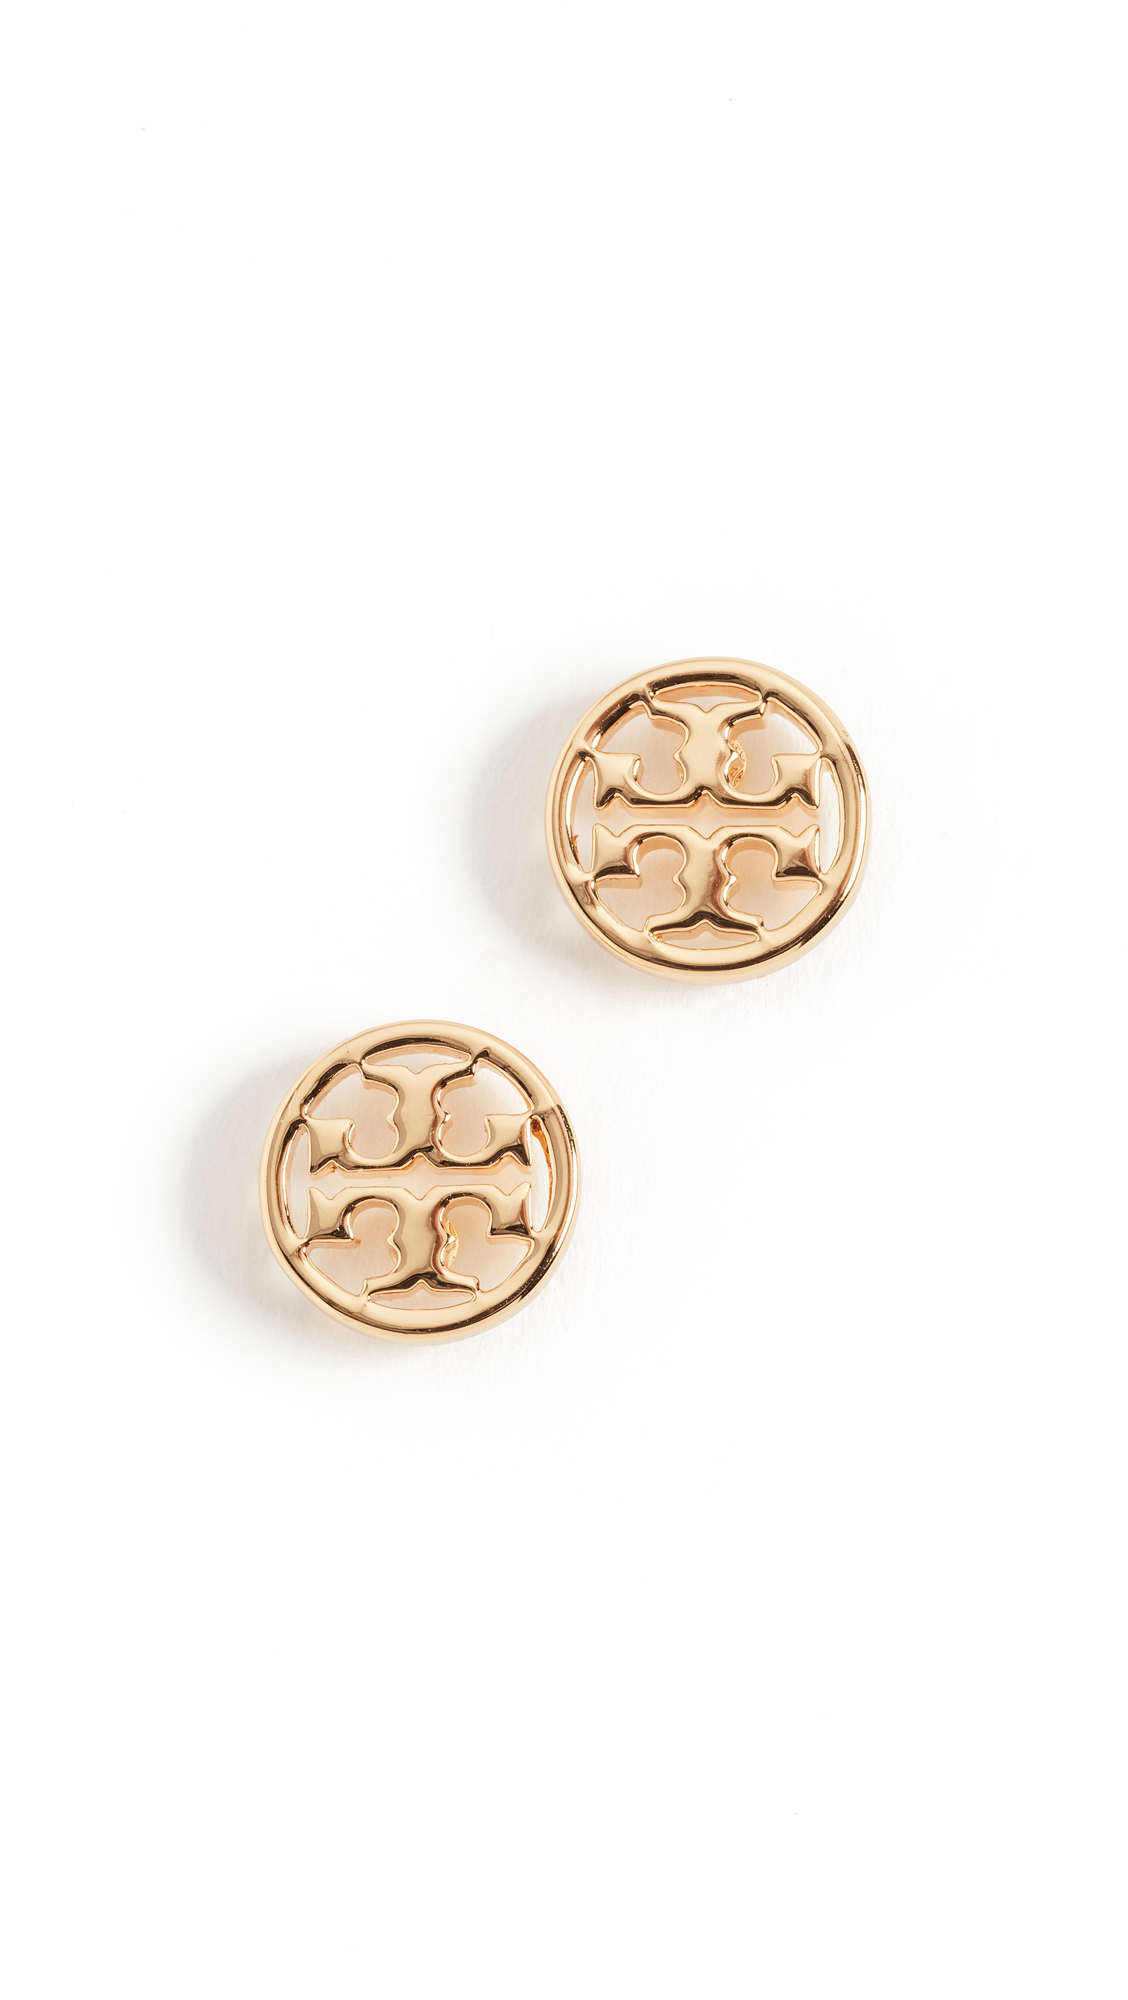 Tory Burch Logo Circle Stud Earrings - Shiny Gold